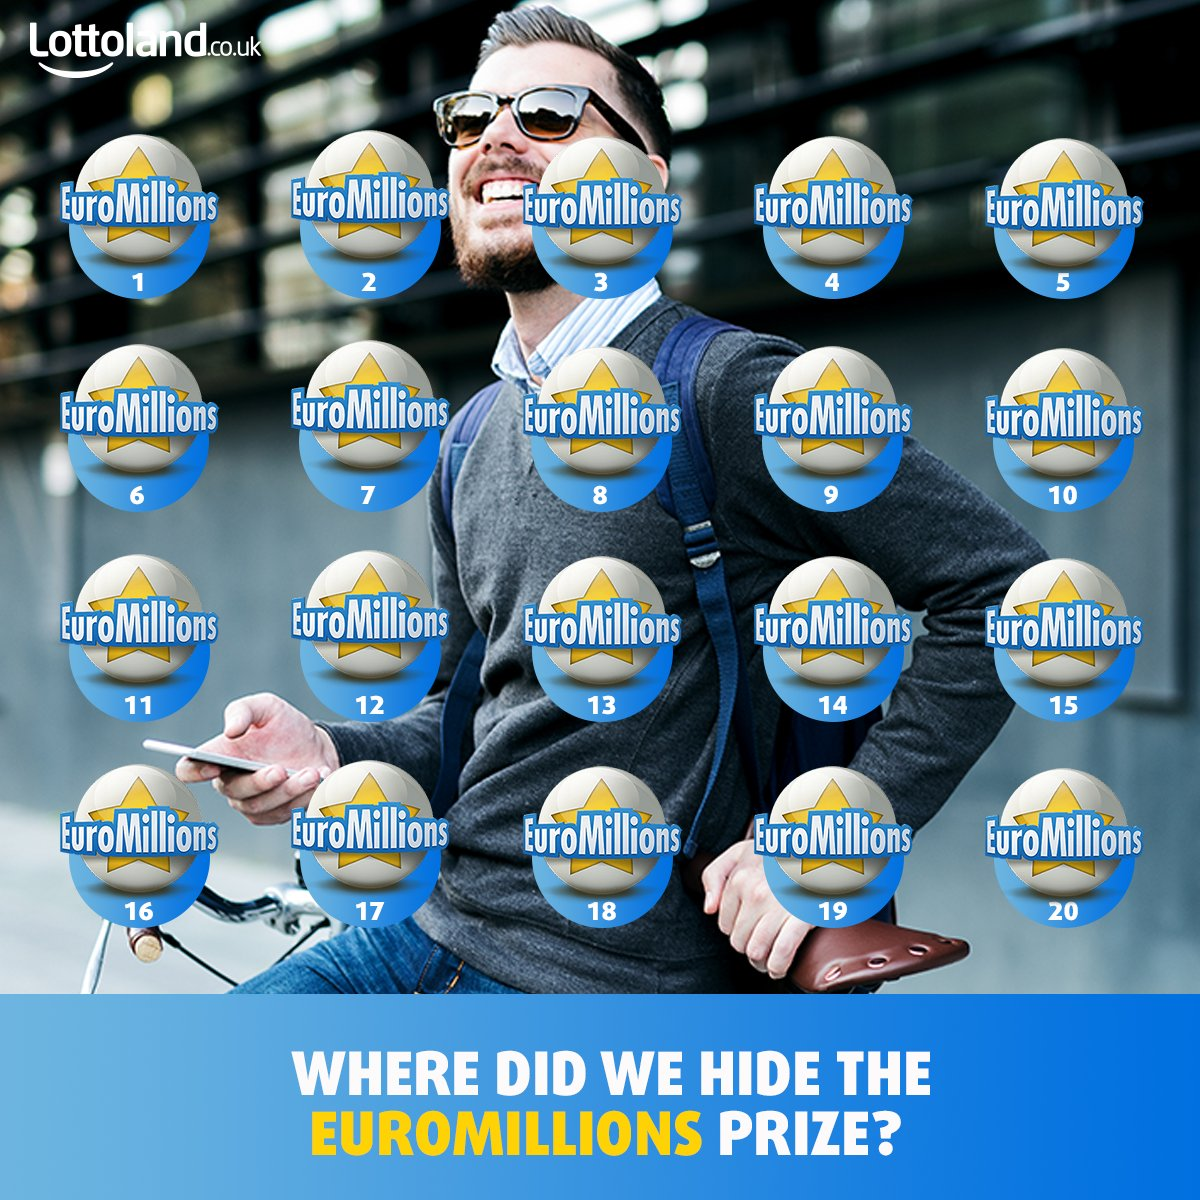 #Follow, RT&amp; Reply with one number (1-20). You&#39;ll be entered into a #draw to #win a Free Bet for Friday's #EuroMillions:  https://www. lottoland.co.uk/euromillions?p id=tw_s_ukemlogos&amp;utm_source=tw&amp;utm_medium=osm&amp;utm_campaign=emlogos &nbsp; … <br>http://pic.twitter.com/DsXFzVFfko